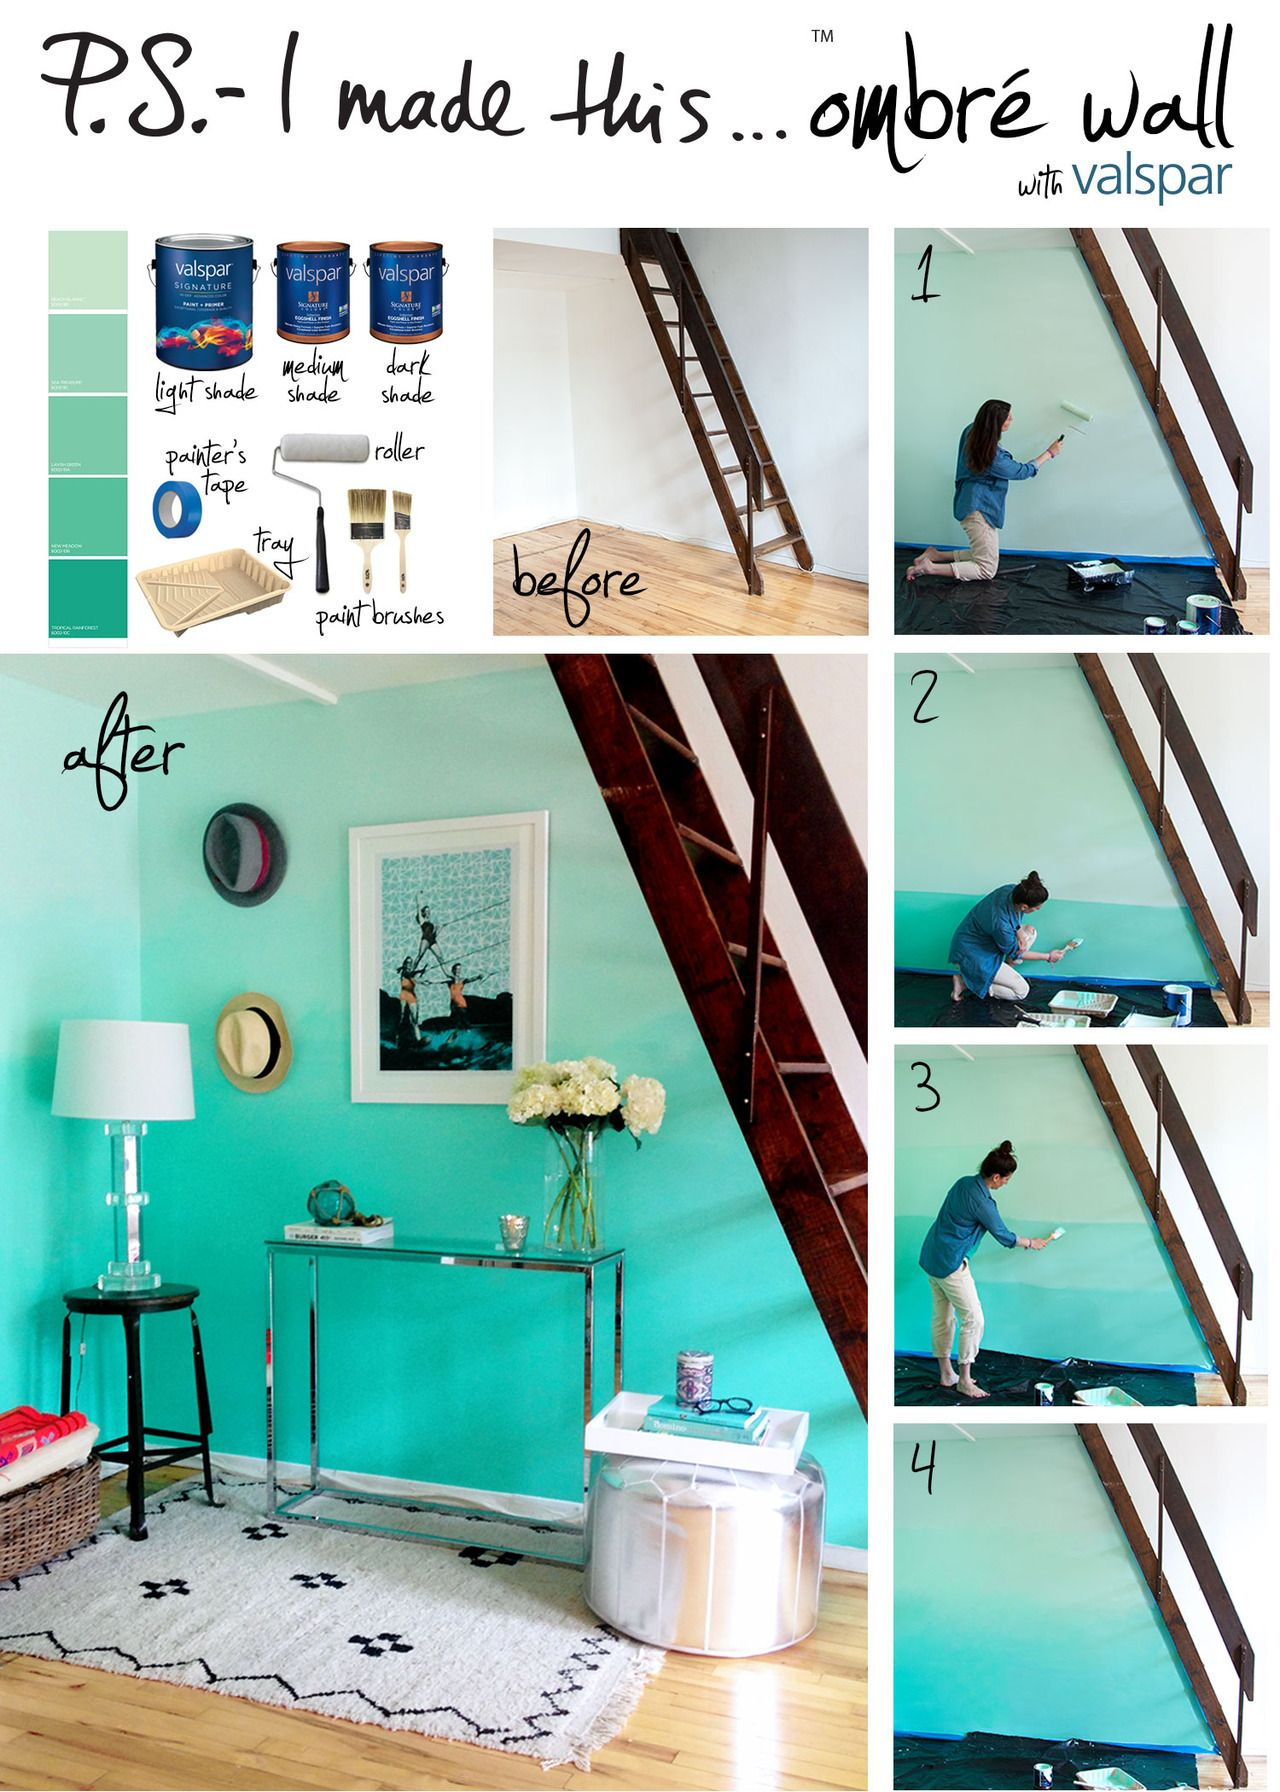 Diy bedroom decorating ideas tumblr - Ombre Wall Diy Psimadethis Loveyourcolor